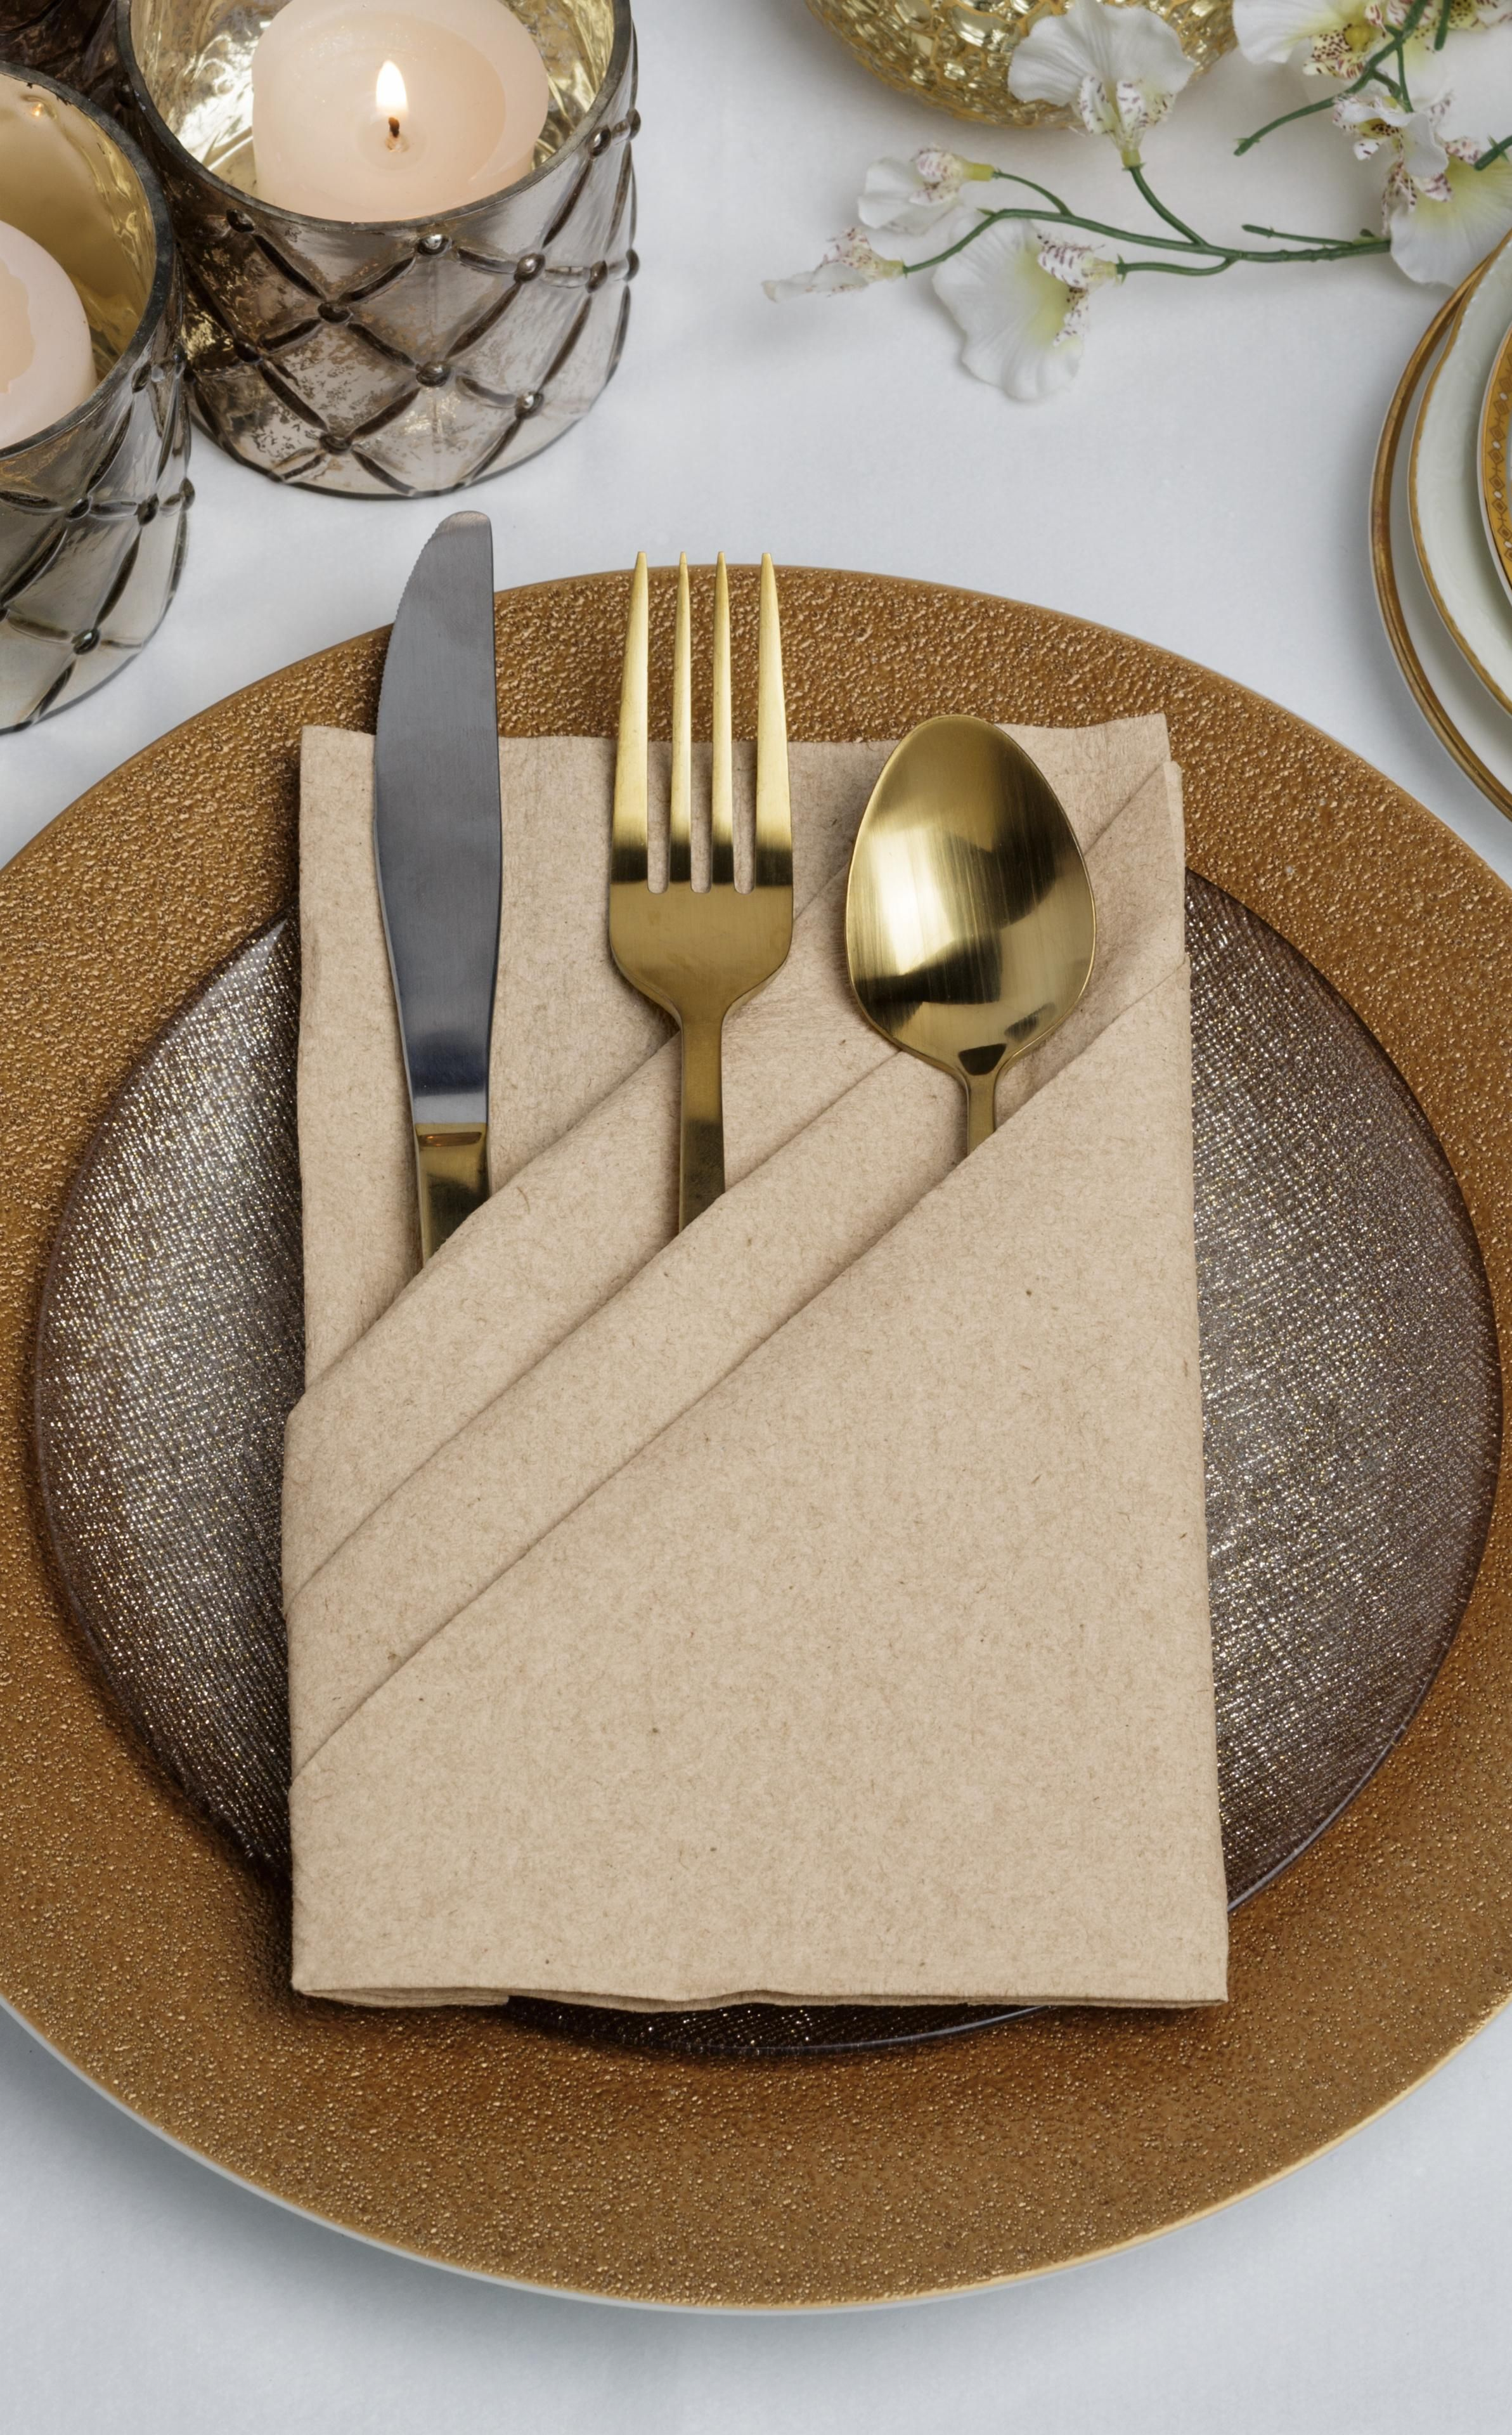 14 5 In X 14 5 In Linen Like Kraft Dinner Napkins Flat Pack 1000 Ct Table Napkins Dinner Napkins Open Kitchen Restaurant